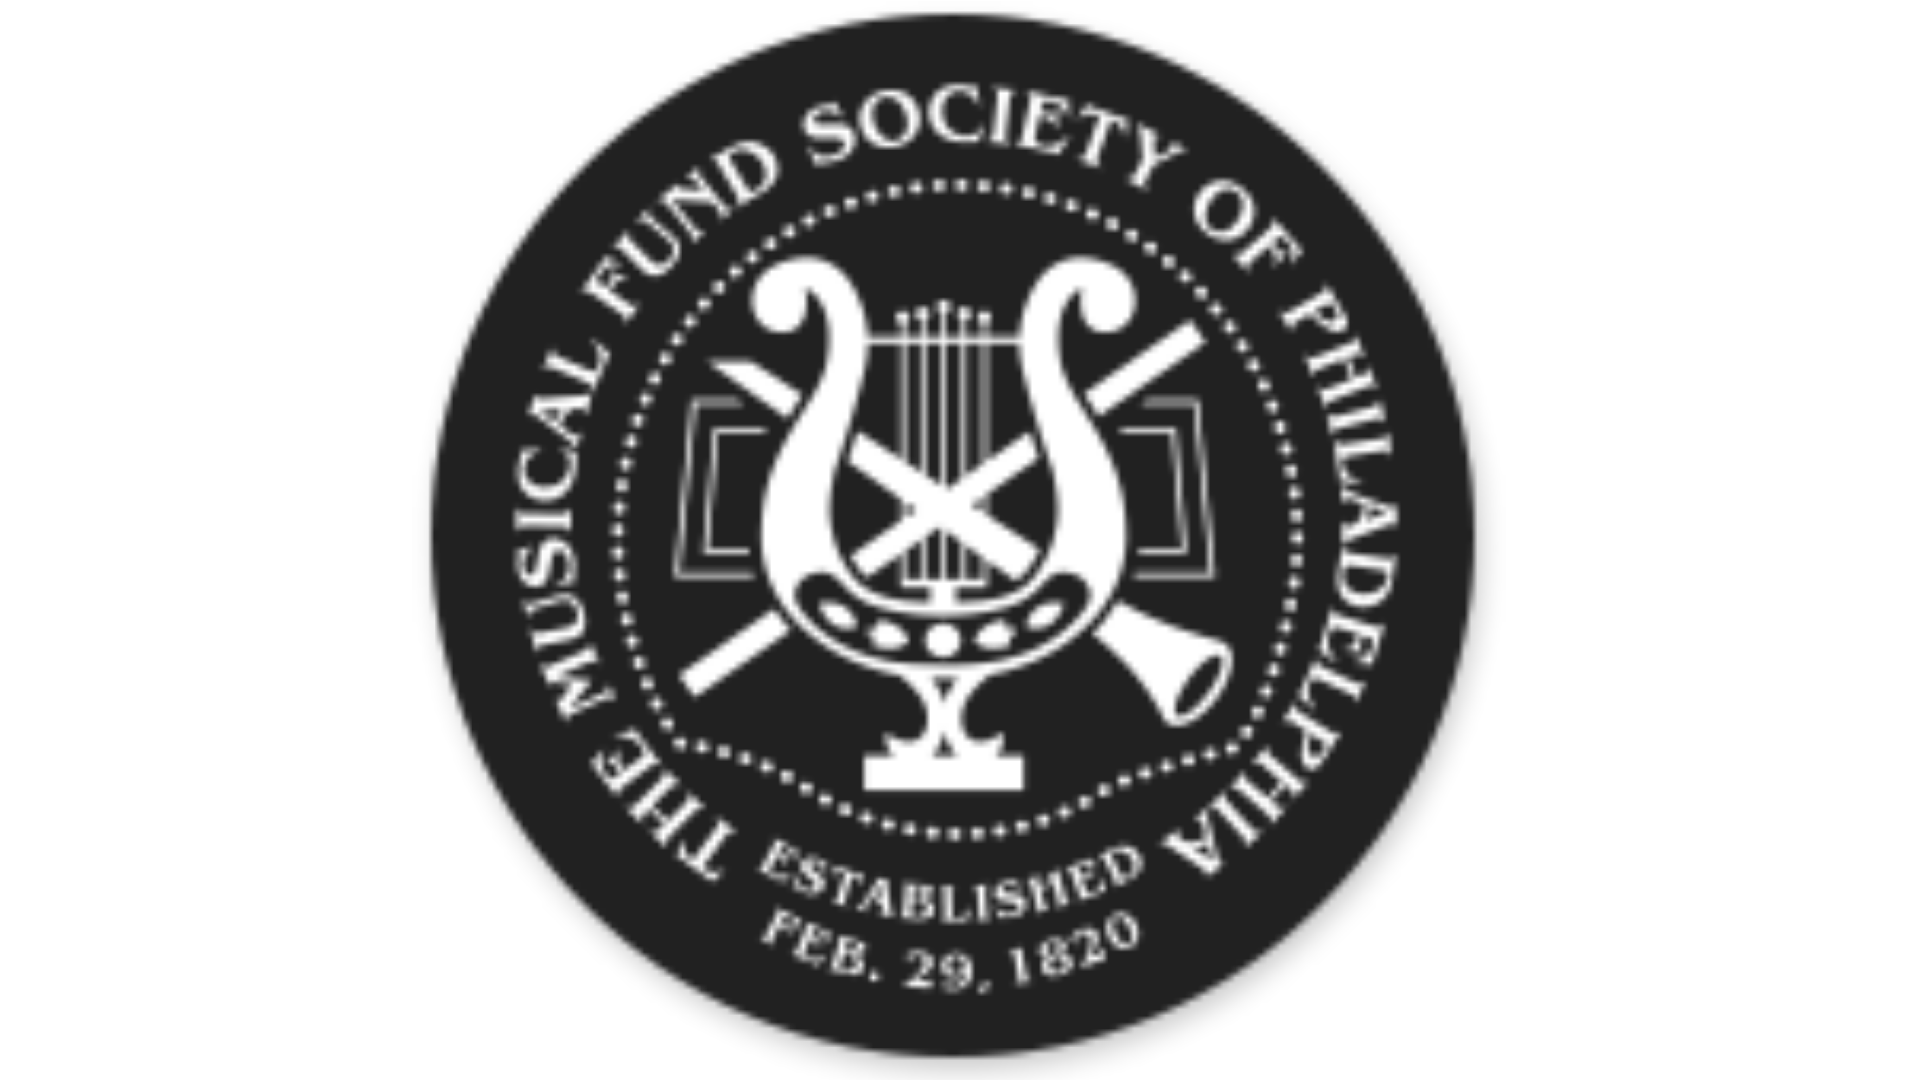 Musical Fund Society